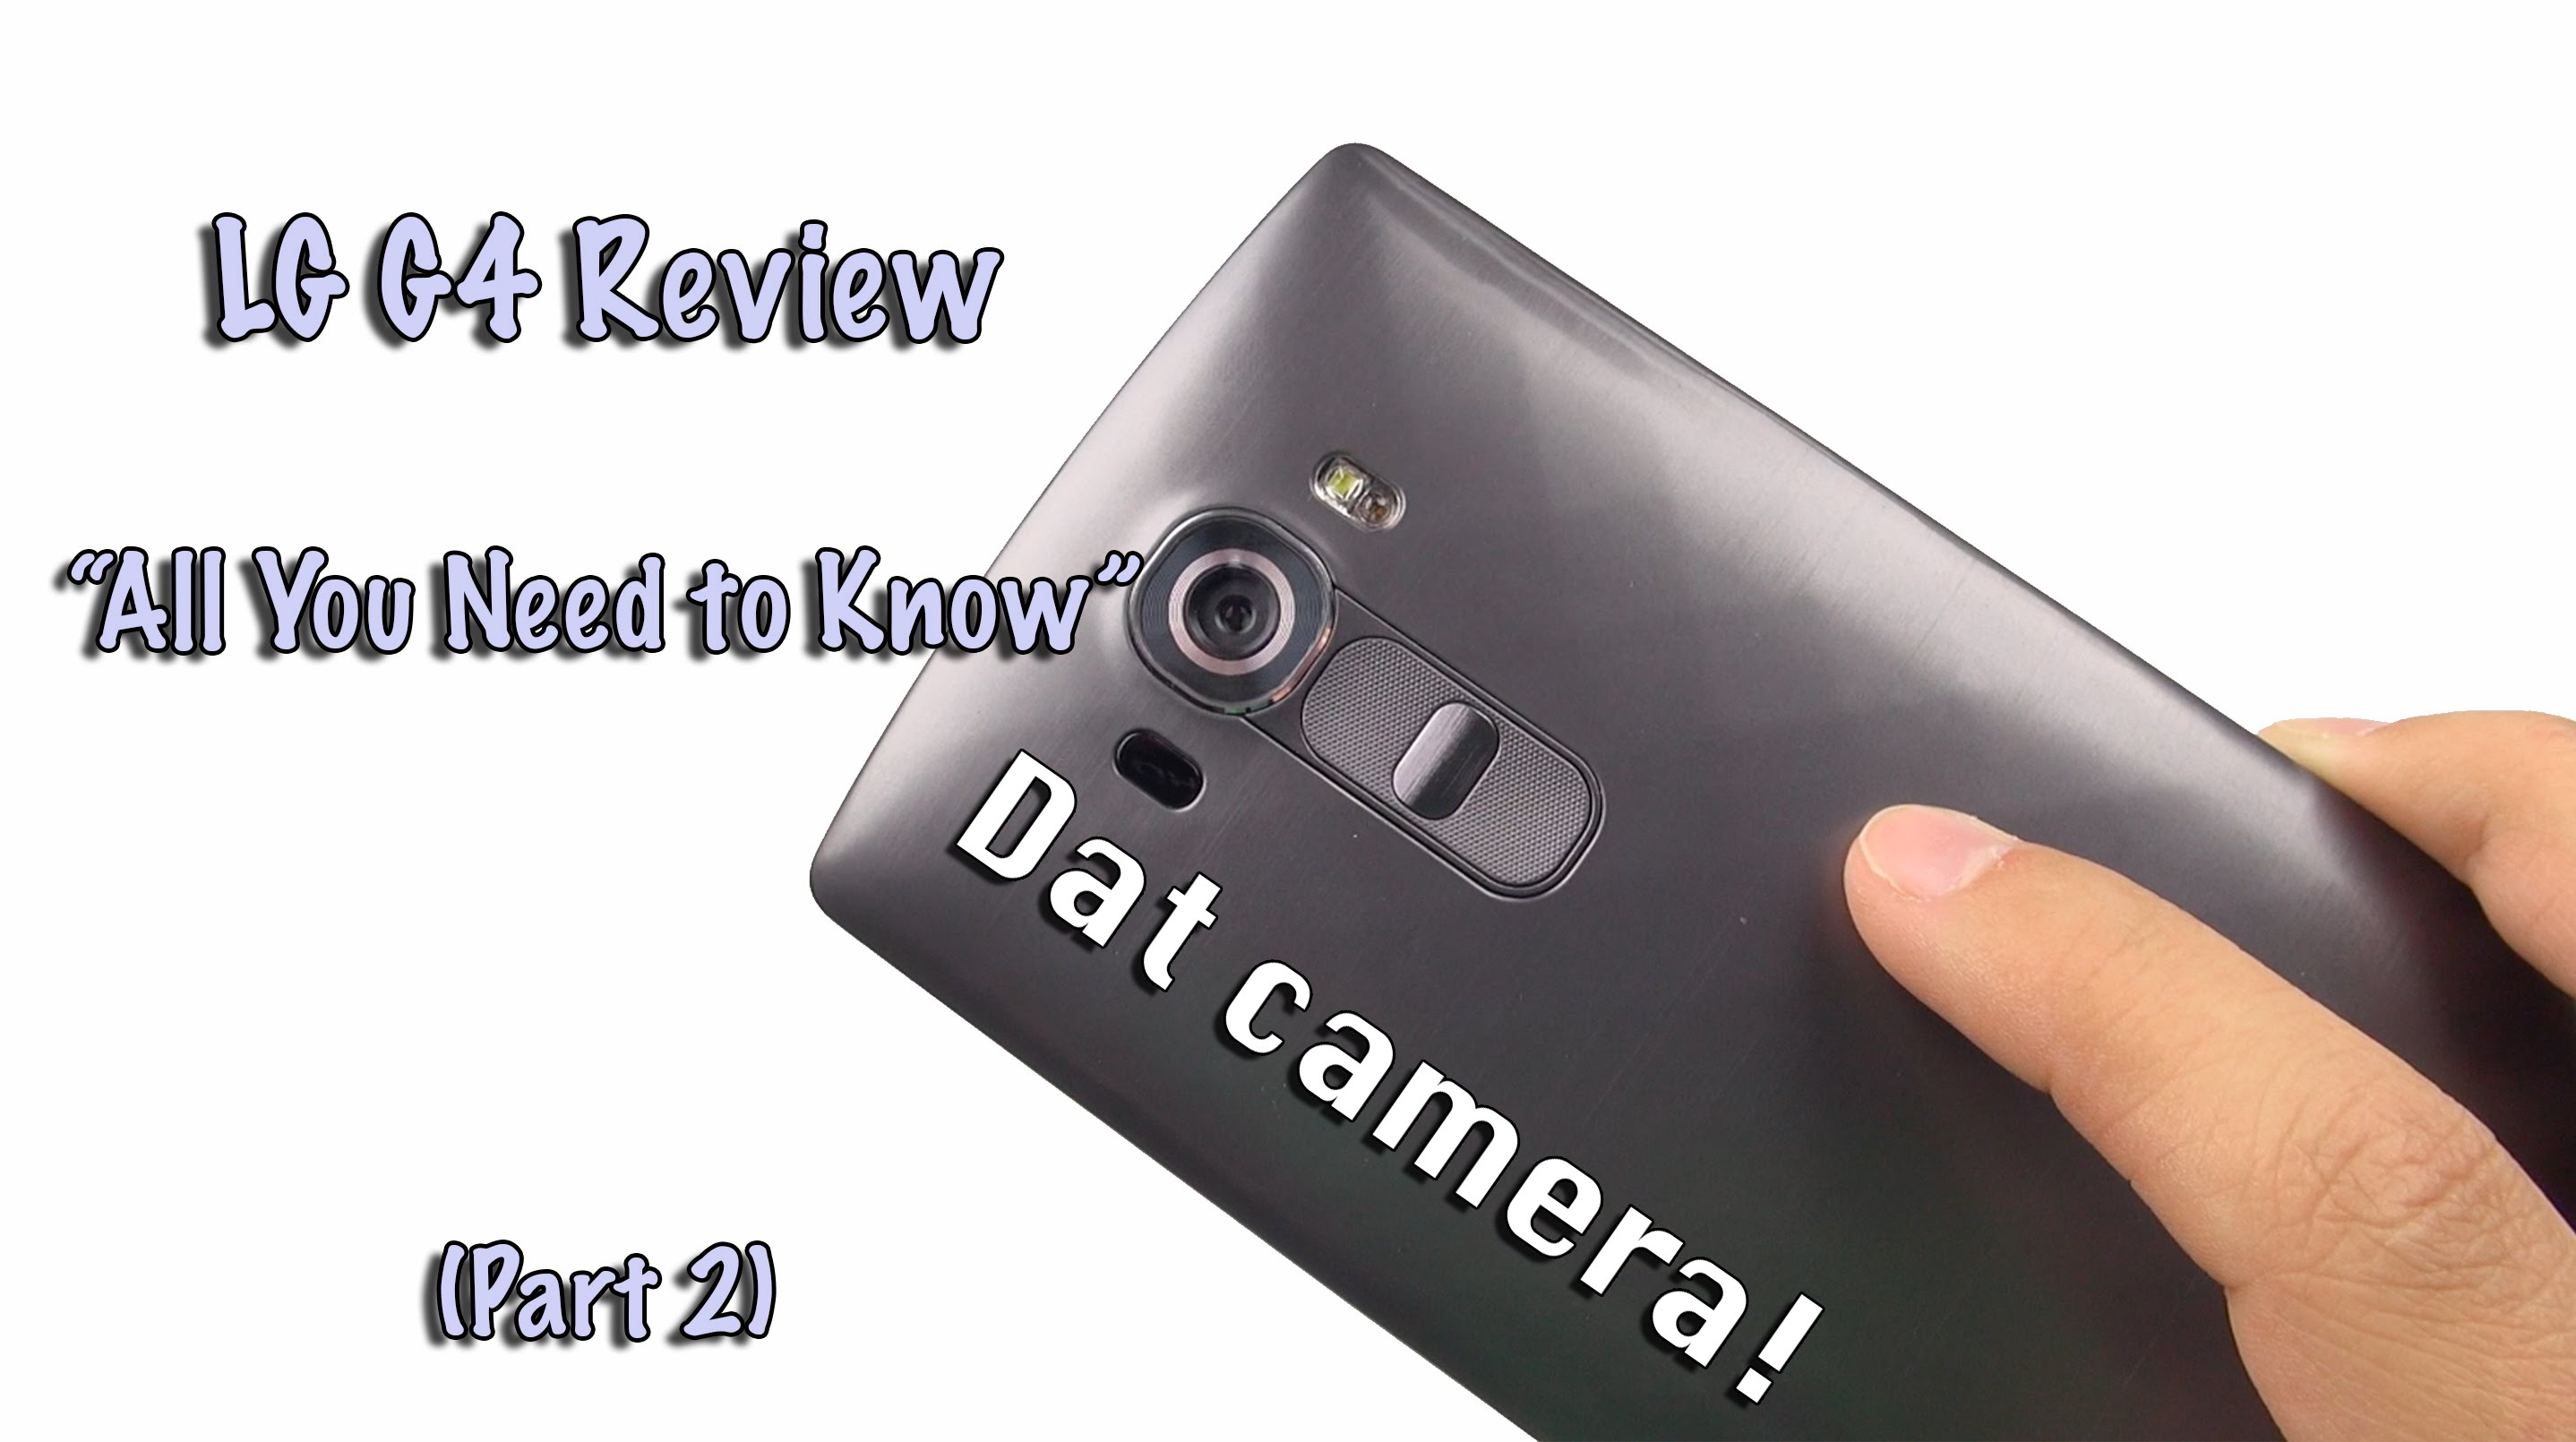 """LG G4 Review: """"All You Need to Know"""" (Part 2)"""